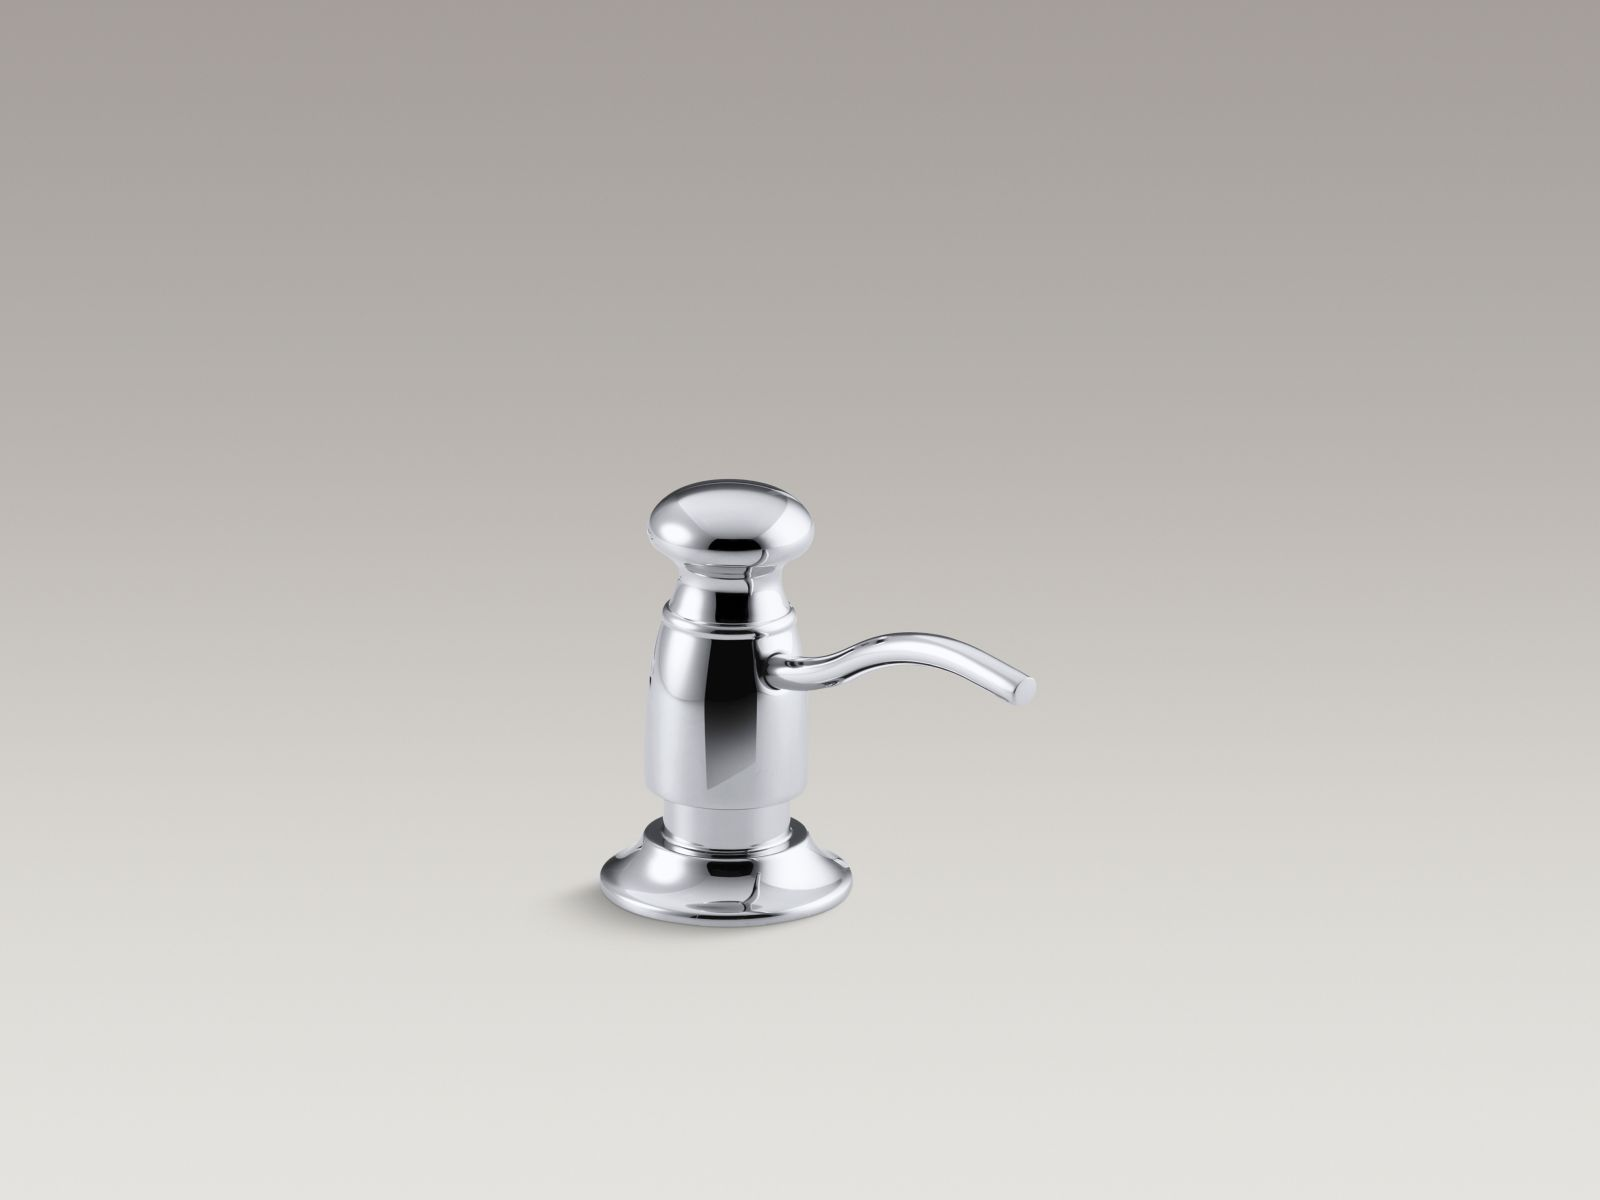 Kohler K-1894-C-CP Traditional Clam Shell Packed Soap or Lotion Dispenser Polished Chrome